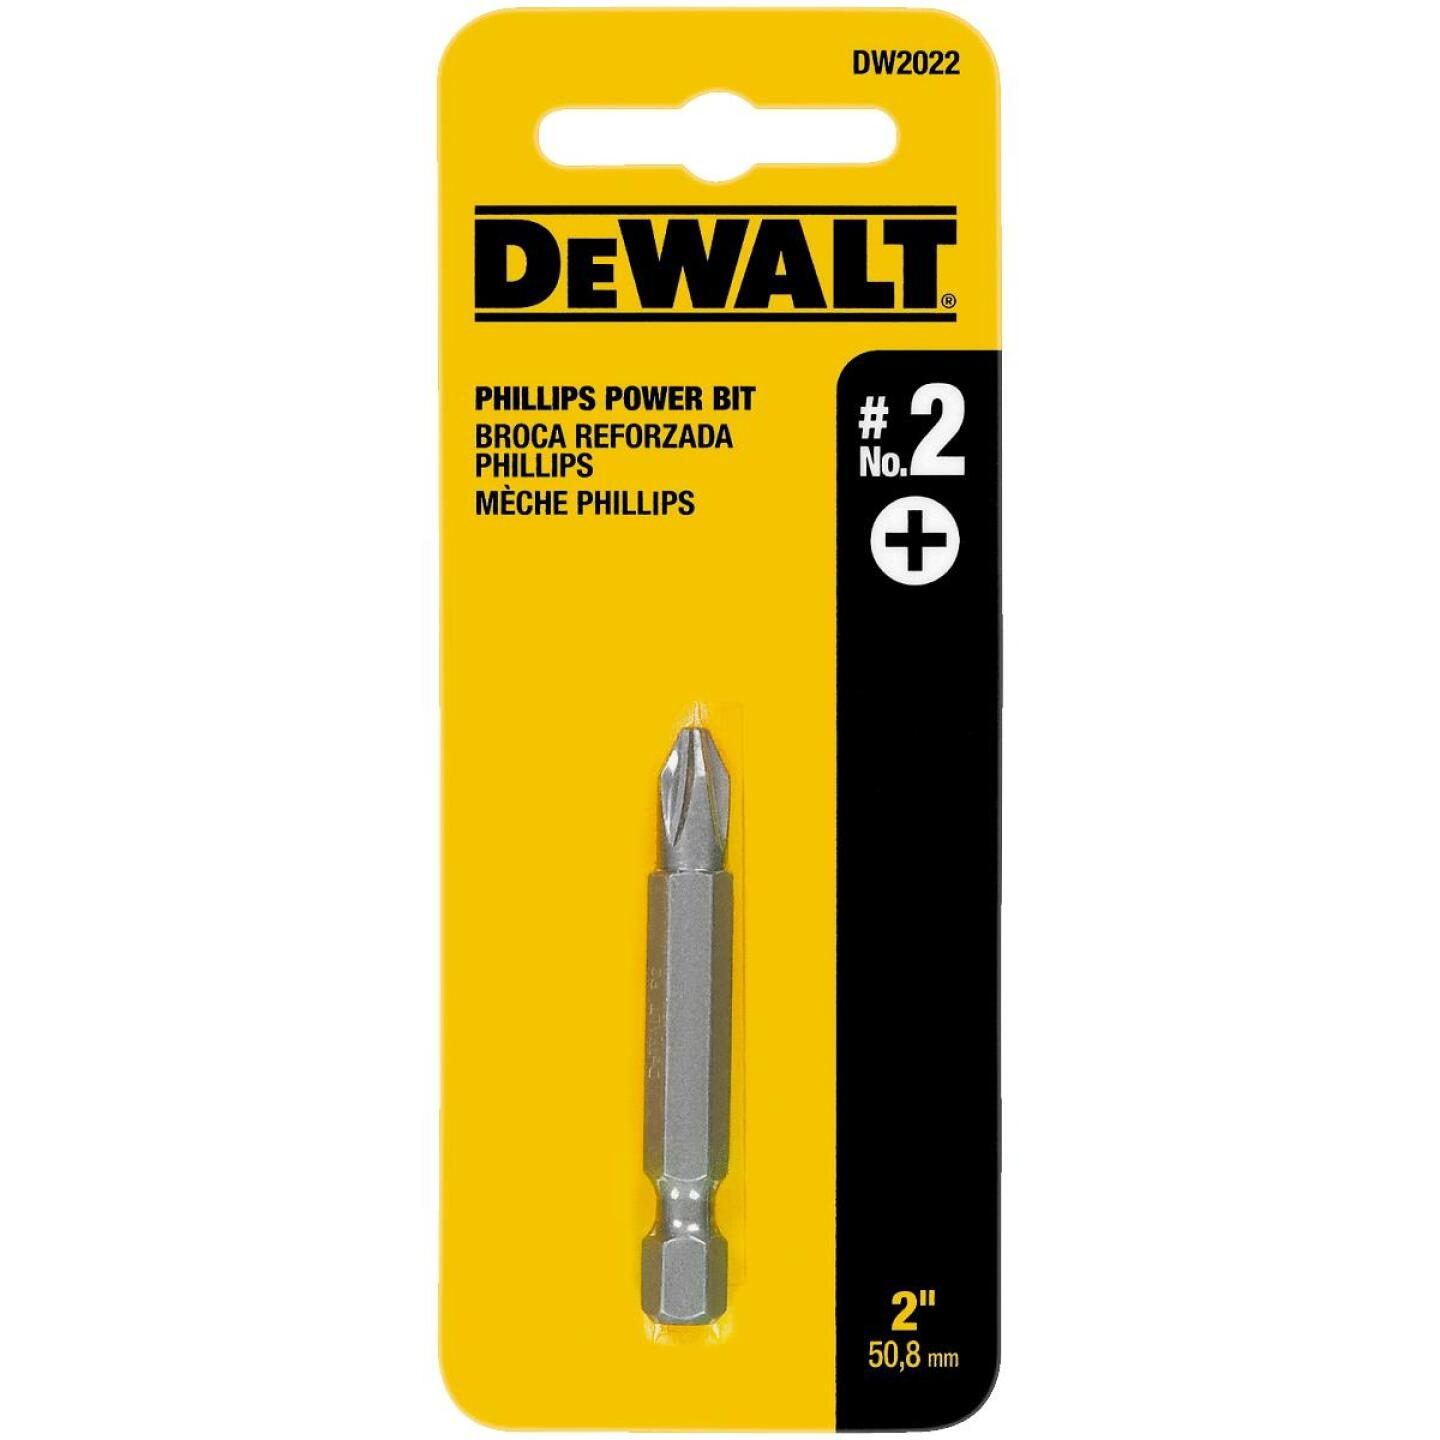 DeWalt Phillips #2 x 2 In. Power 2 In. Screwdriver Bit Display Image 1